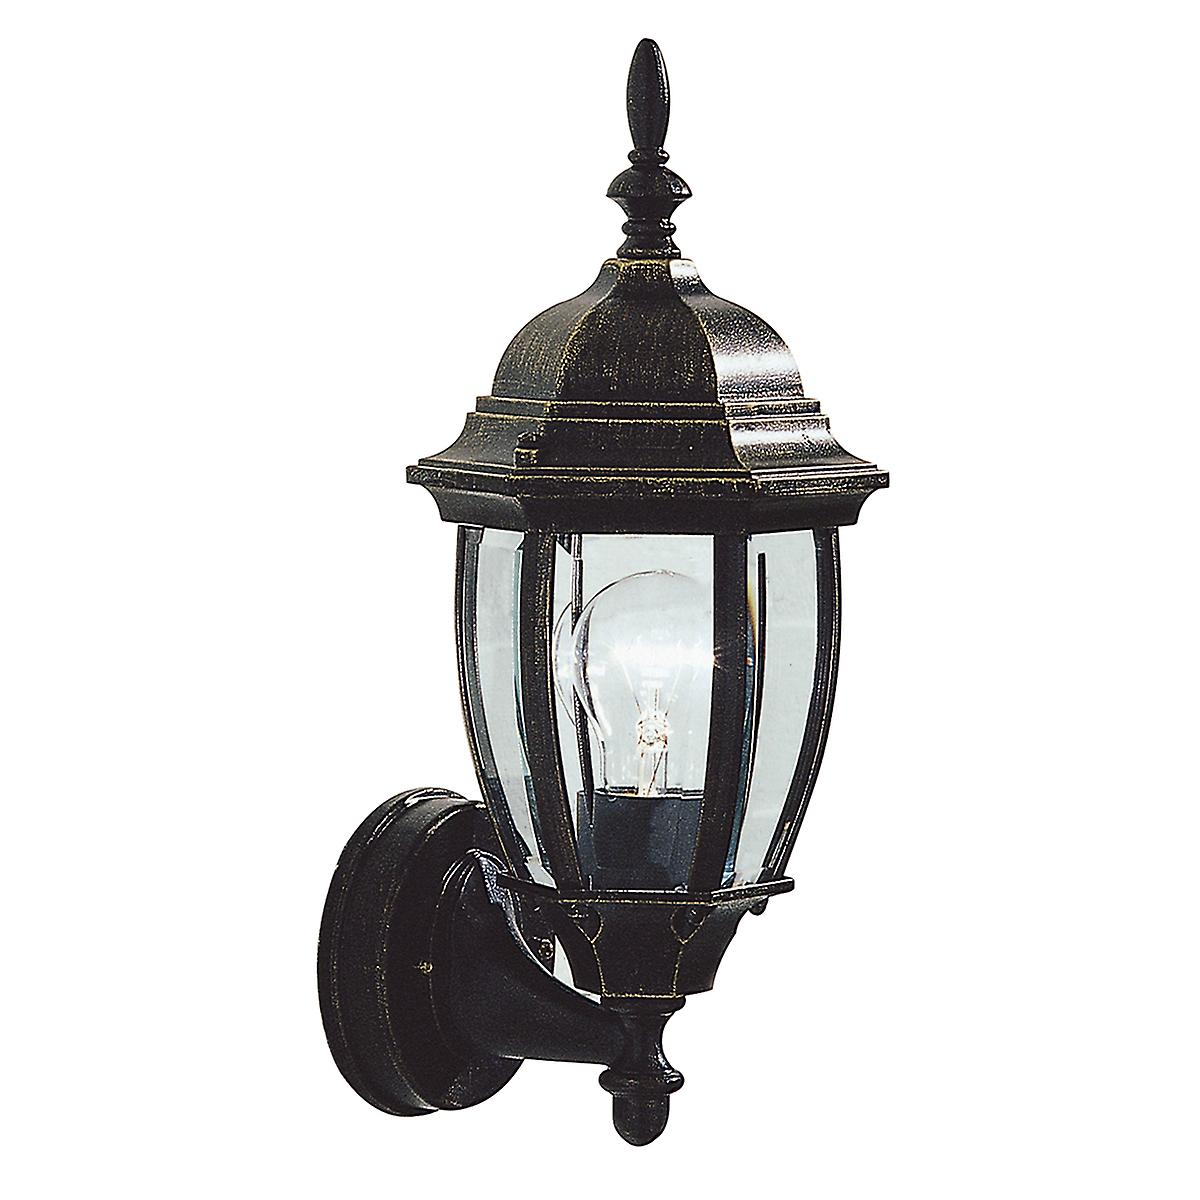 Dar HAM162235 Hambro Double Insulated Outdoor Wall Light In Black Gold Finish